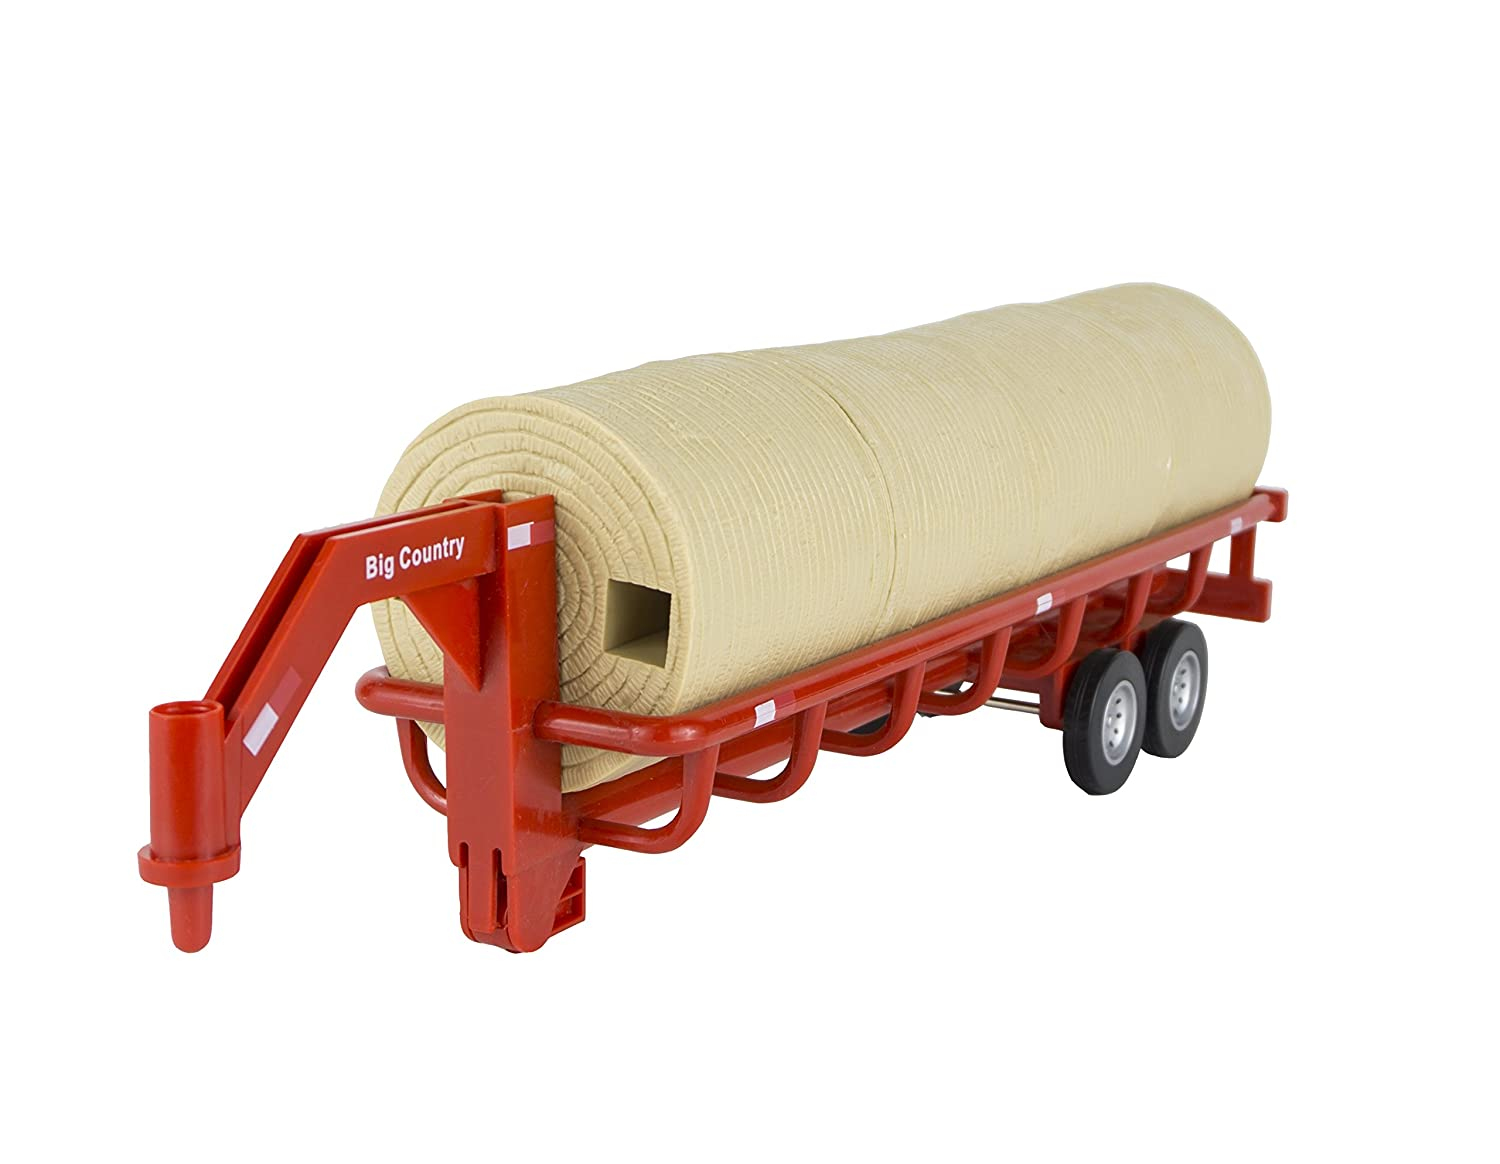 Big Country Toys Hay Trailer - 1:20 Scale - Farm Toys & Ranch Toys - Hay Baling Toys - Toy Hay Bales